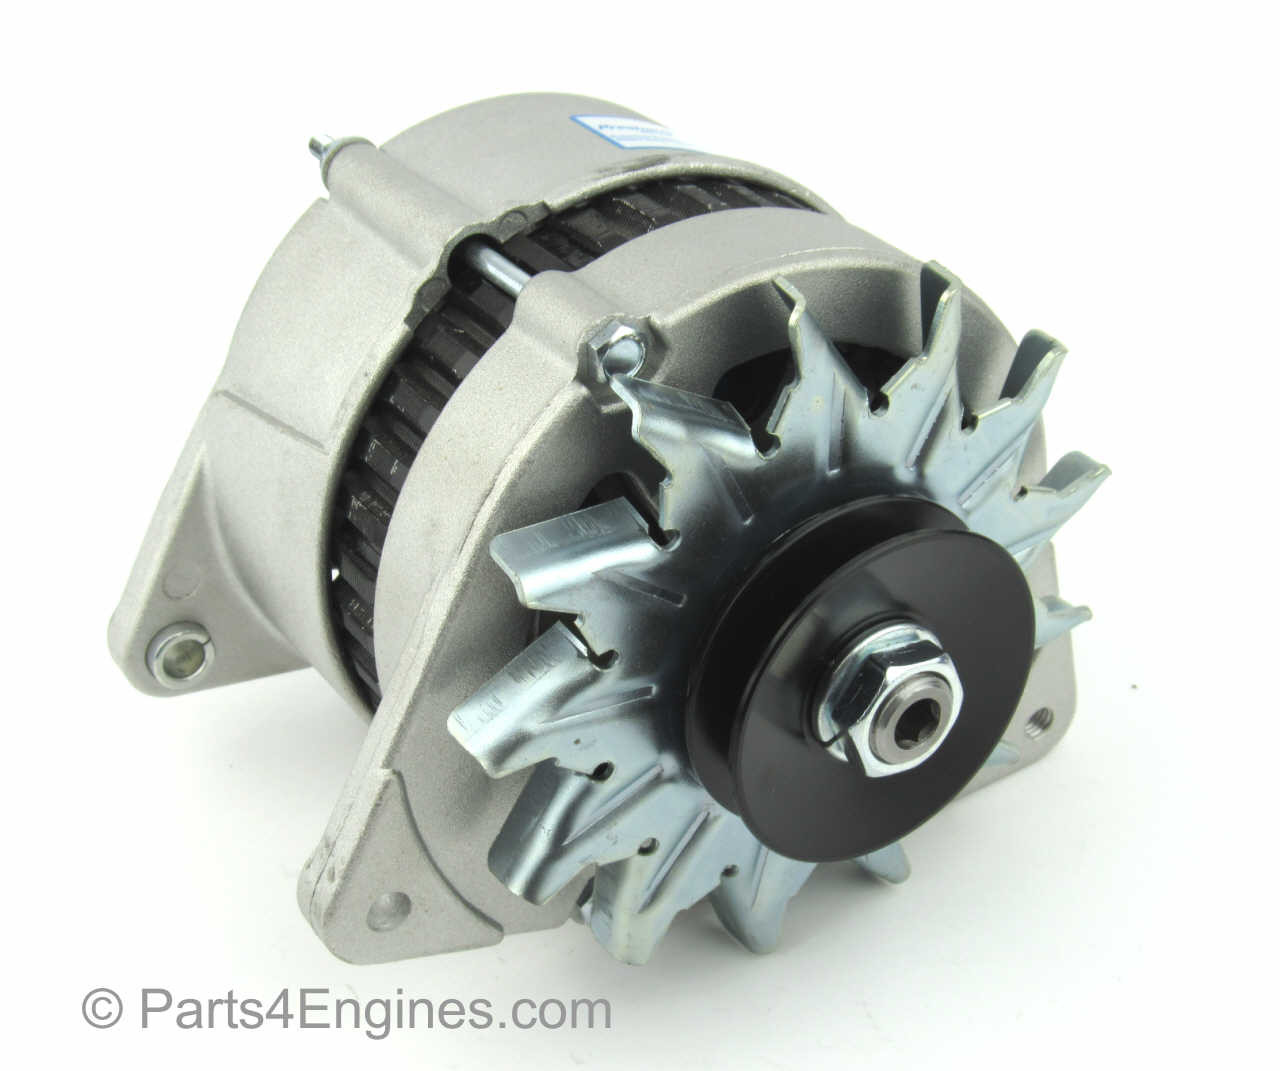 hight resolution of  left perkins 4 107 alternator 12v 70 amp from parts4engines com